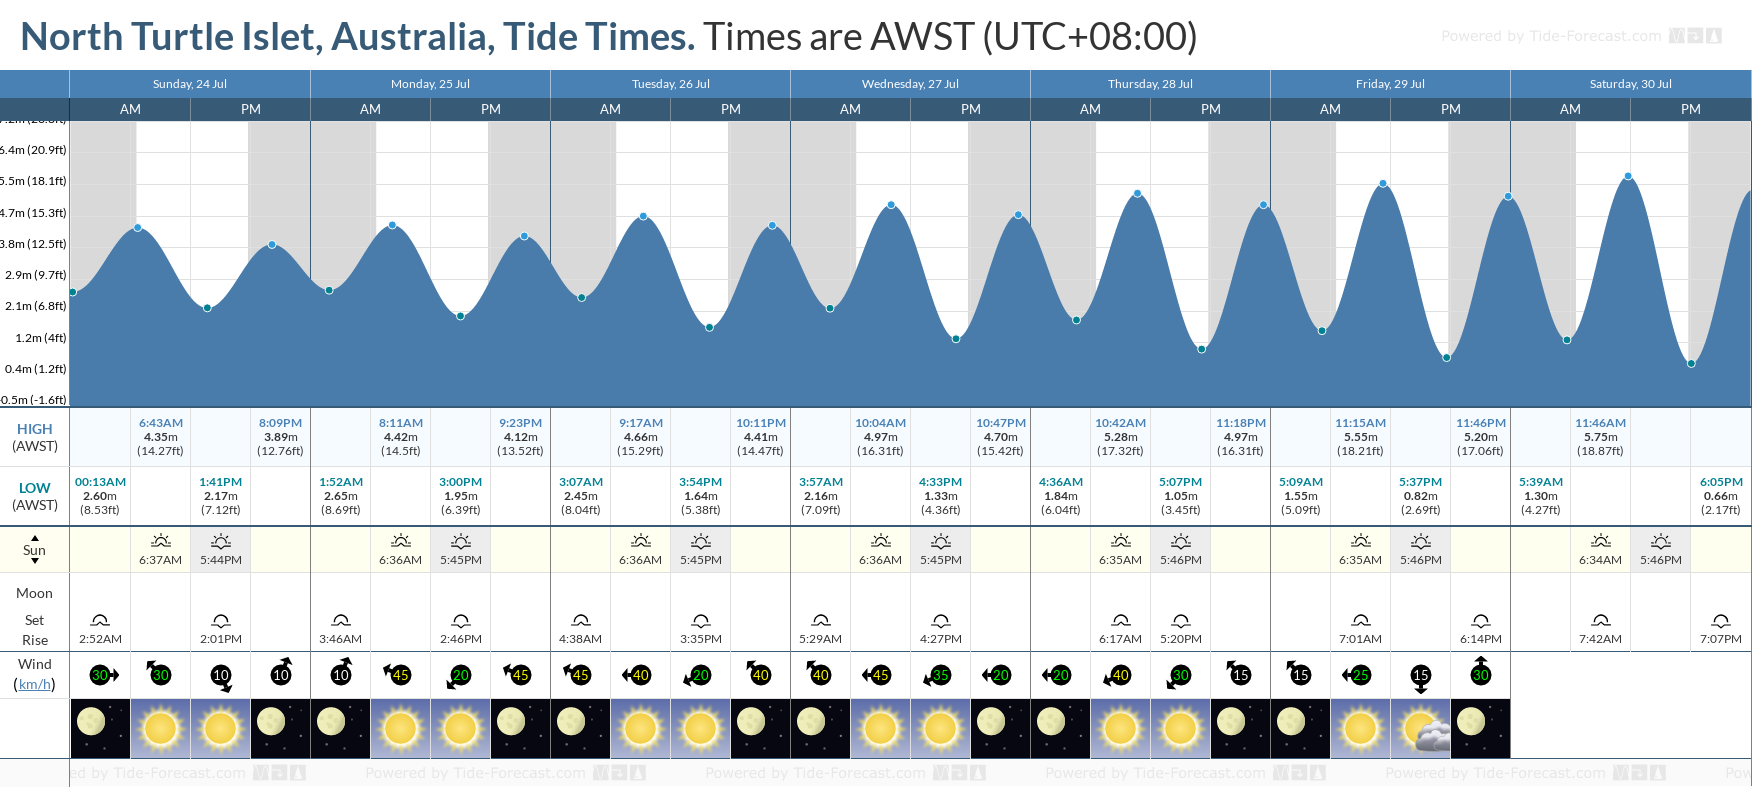 North Turtle Islet, Australia Tide Chart including high and low tide tide times for the next 7 days